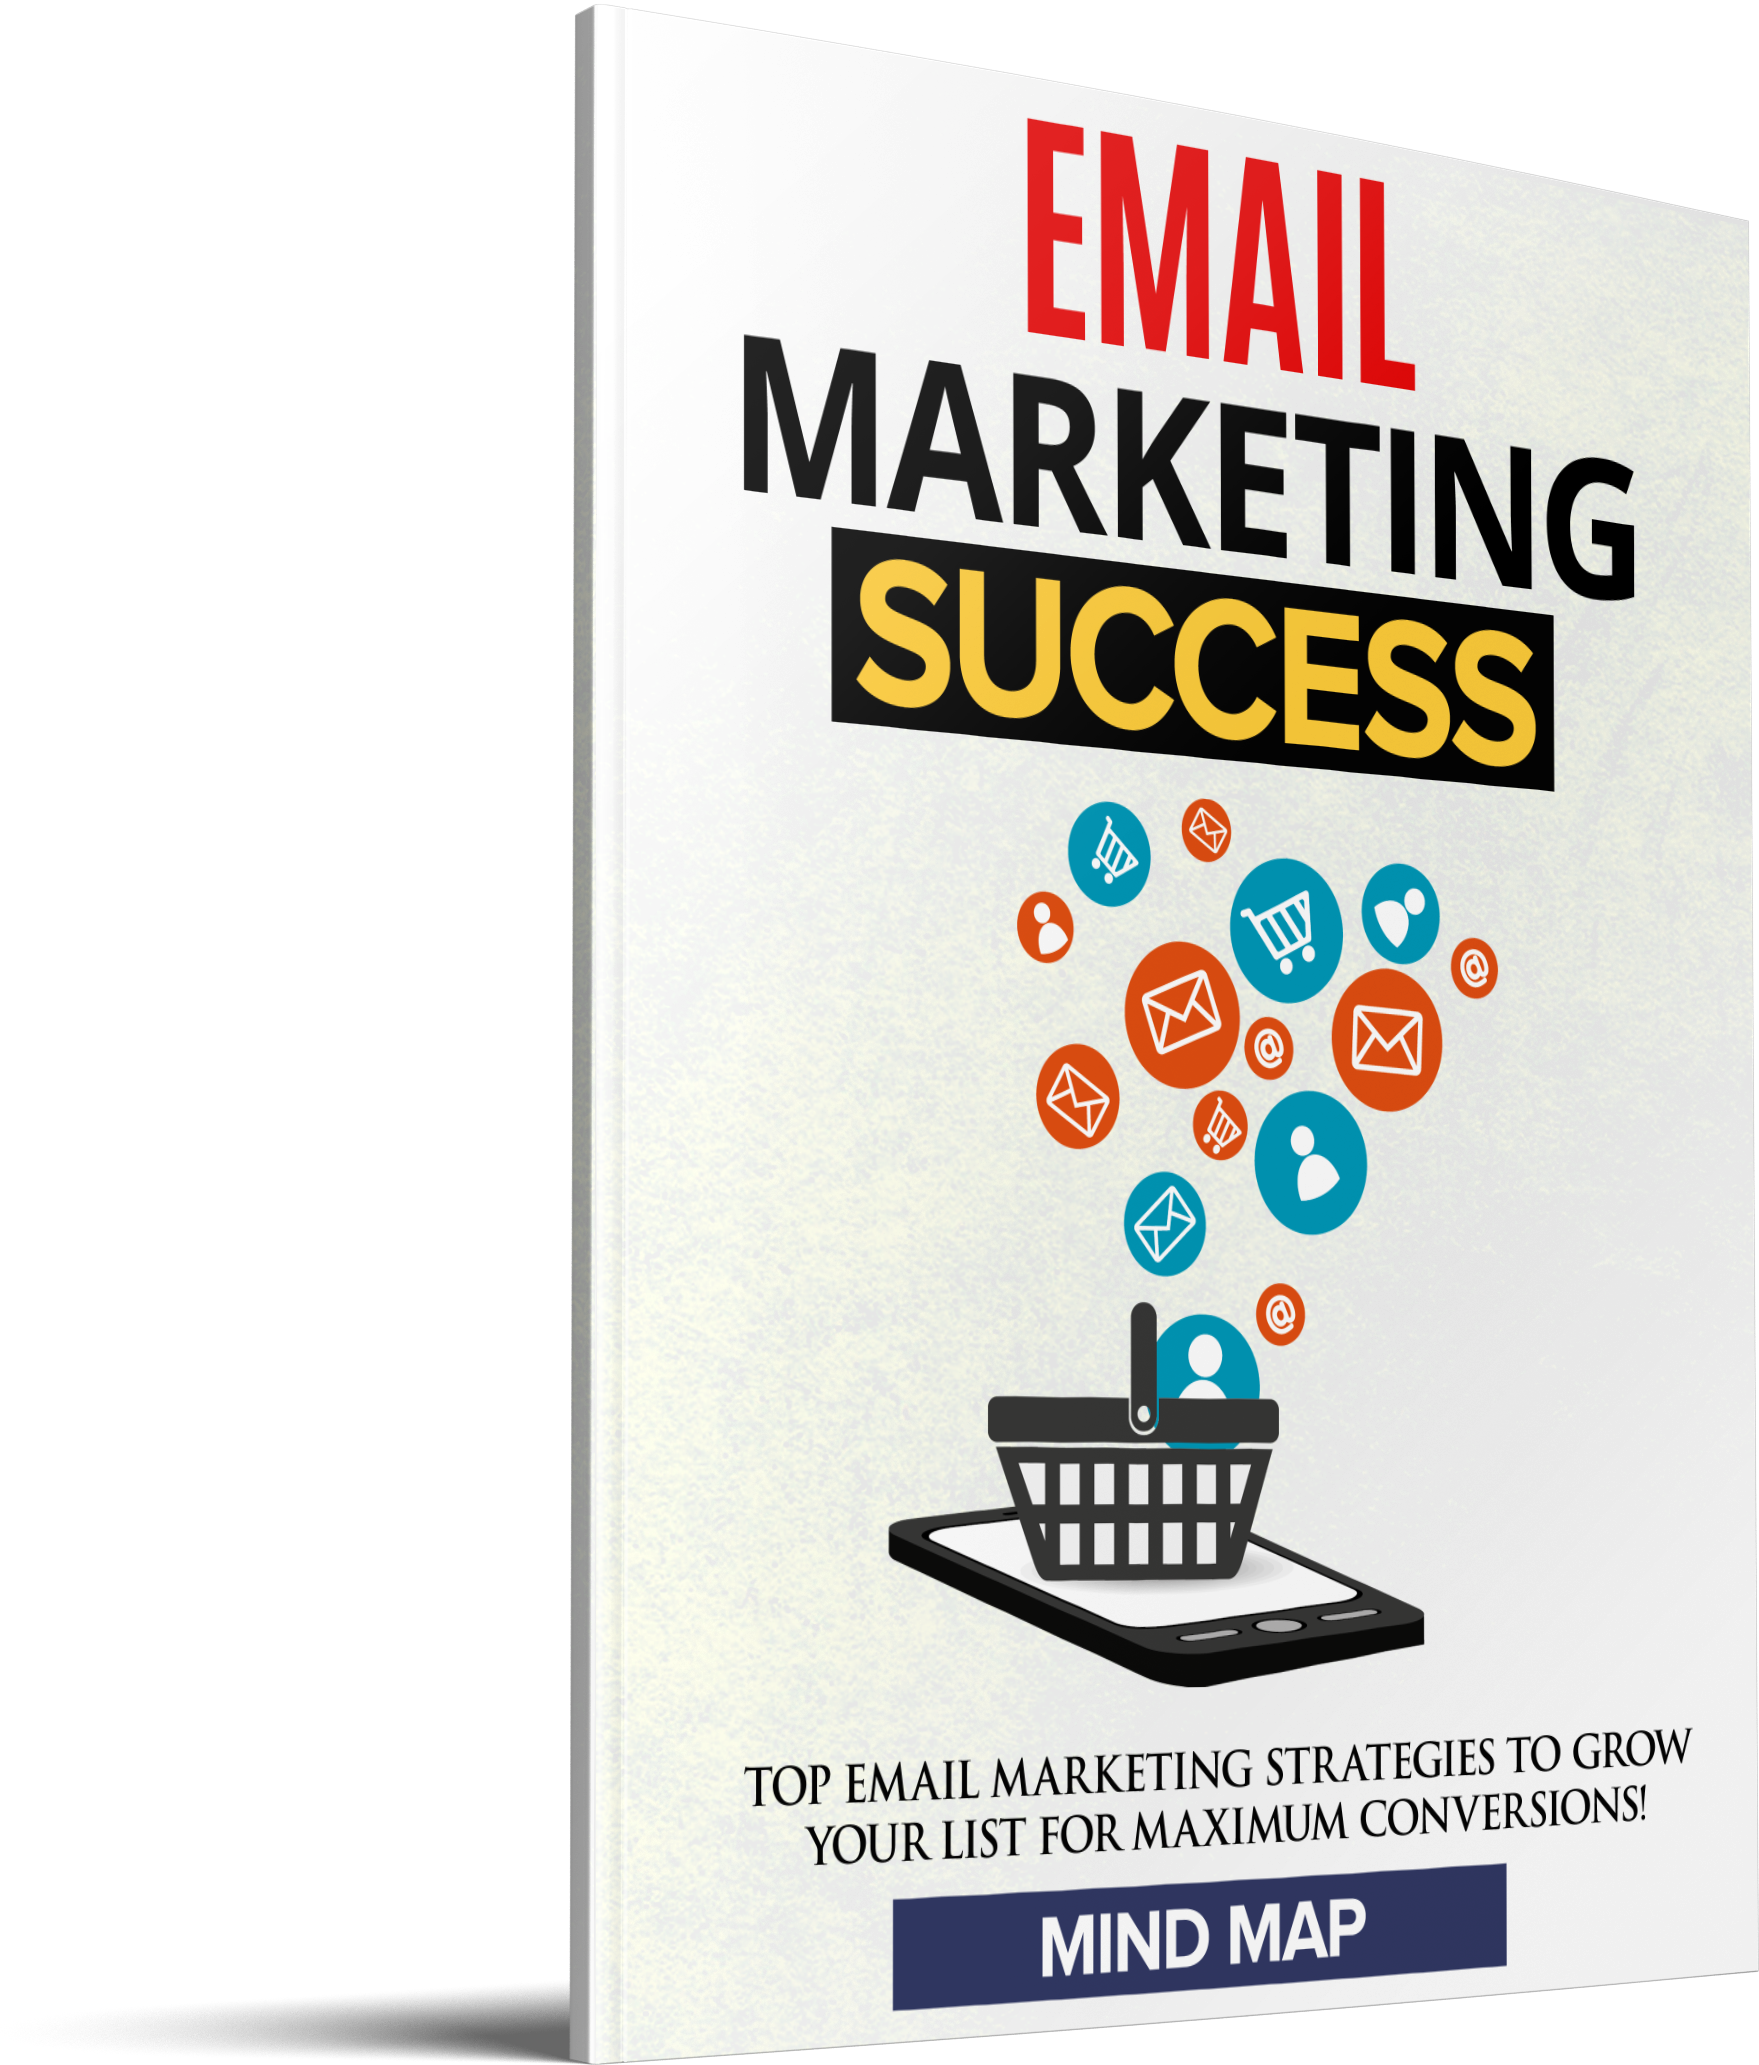 Email Marketing Success Mind Map